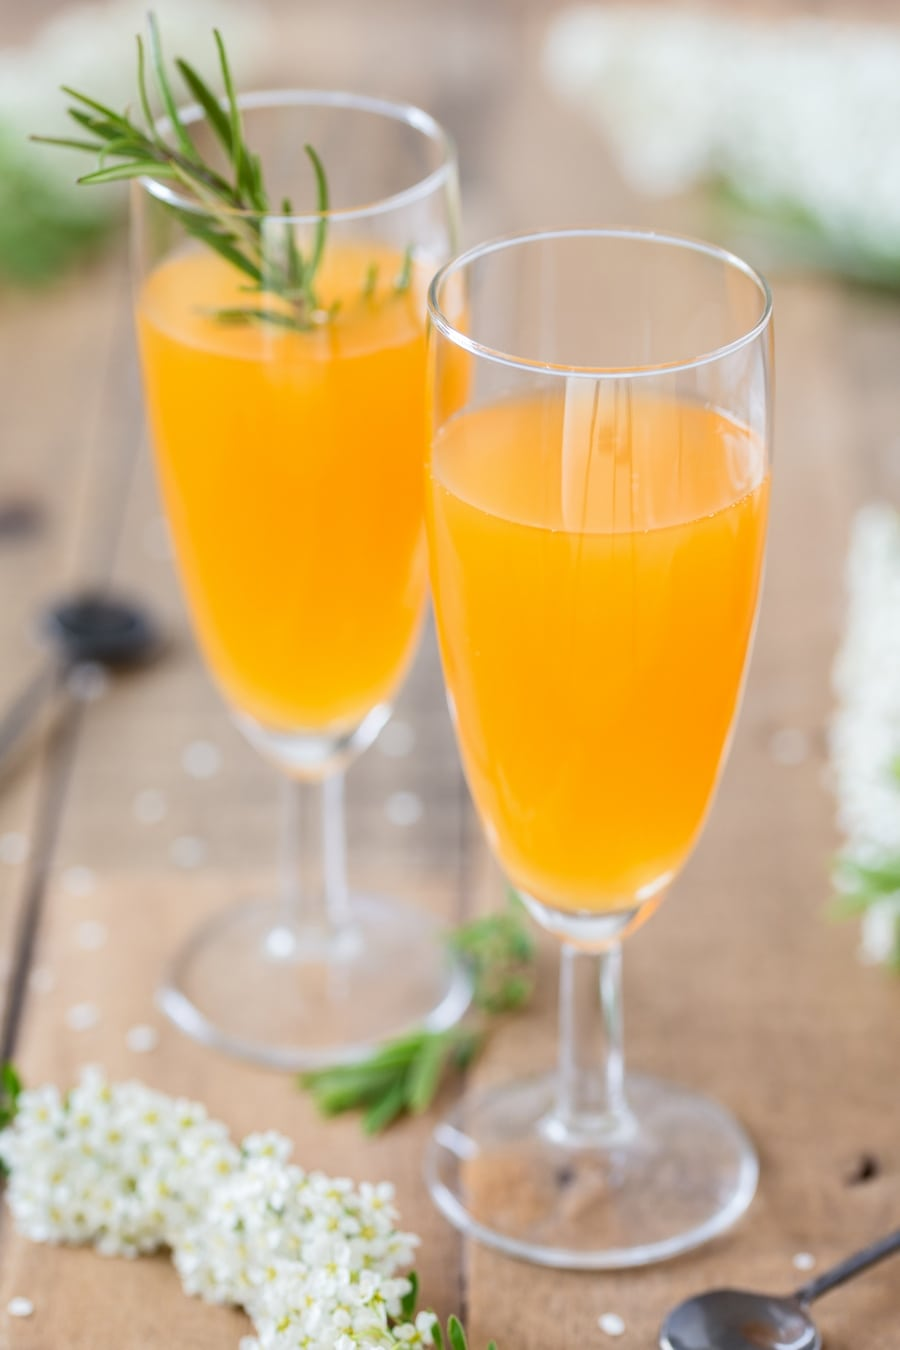 Mango cider bellini in champagne glasses.